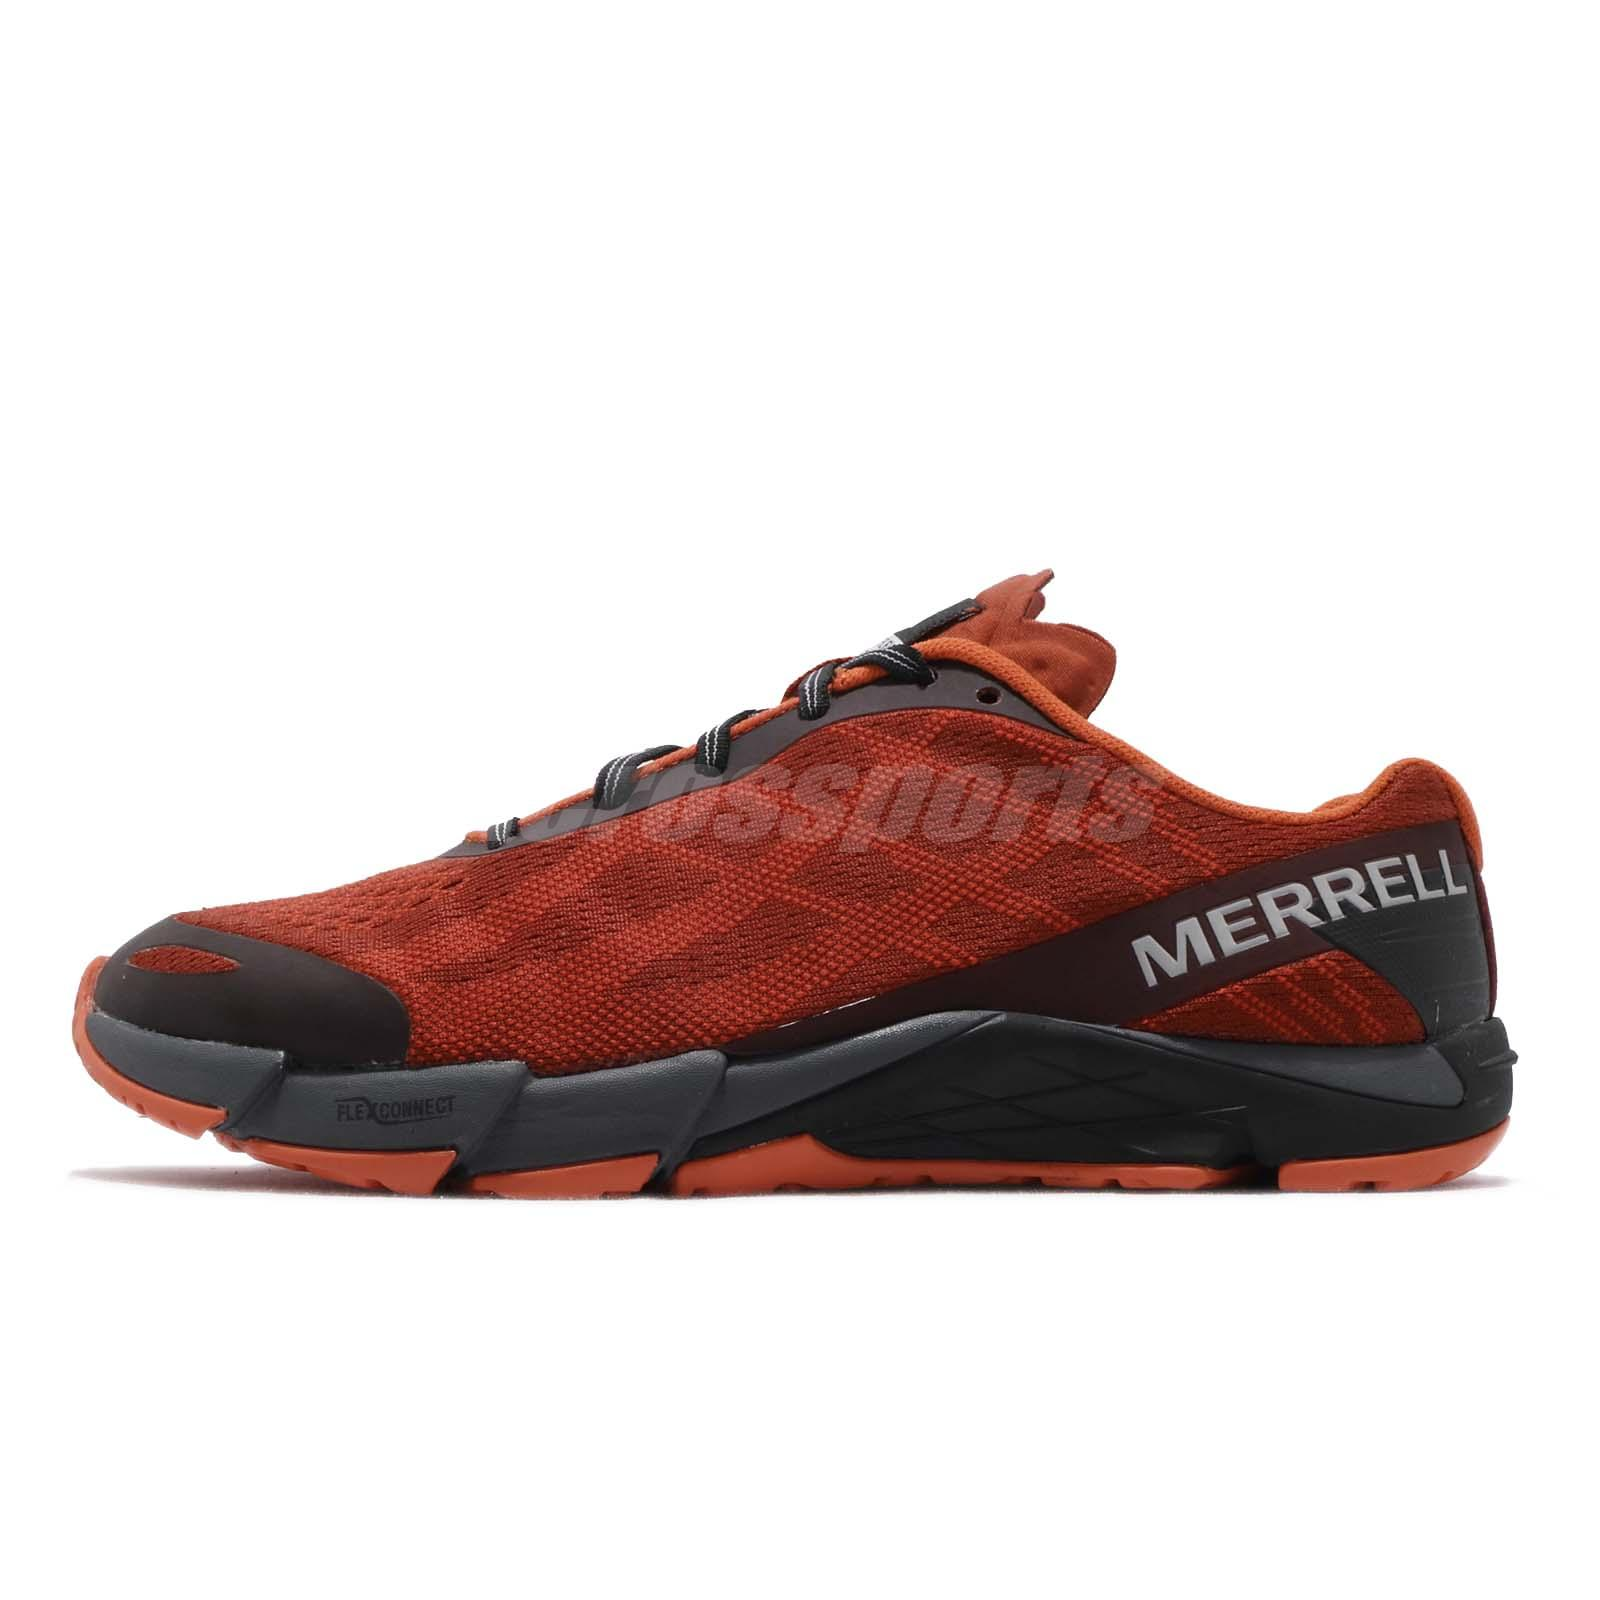 size 40 1b318 310be Details about Merrell Bare Access Flex E-Mesh Spicy Orange Mens Barefoot  Running Shoes J12549